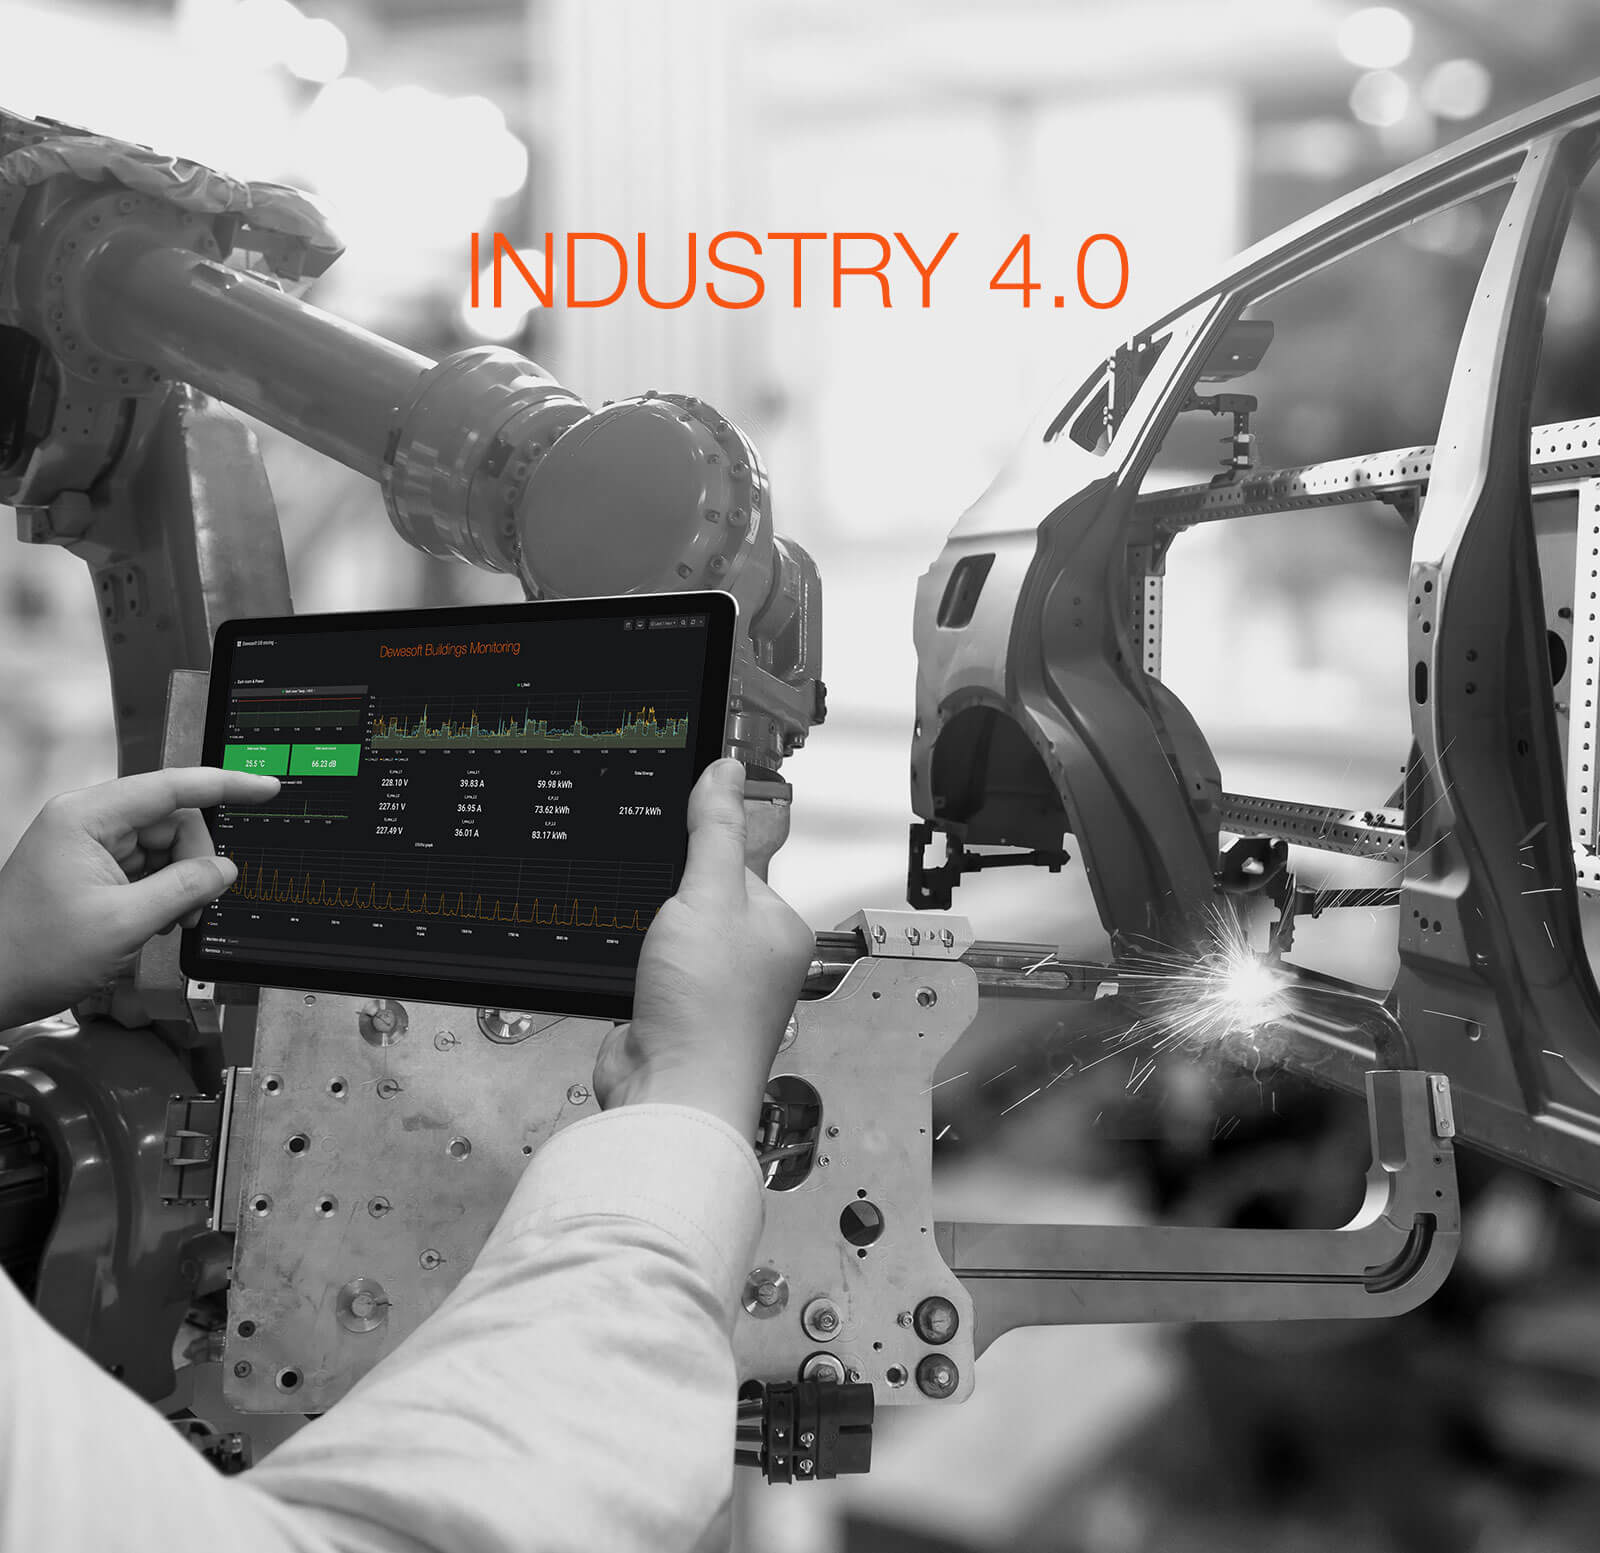 Industry 4.0 (IIoT) Connectivity With OPC UA